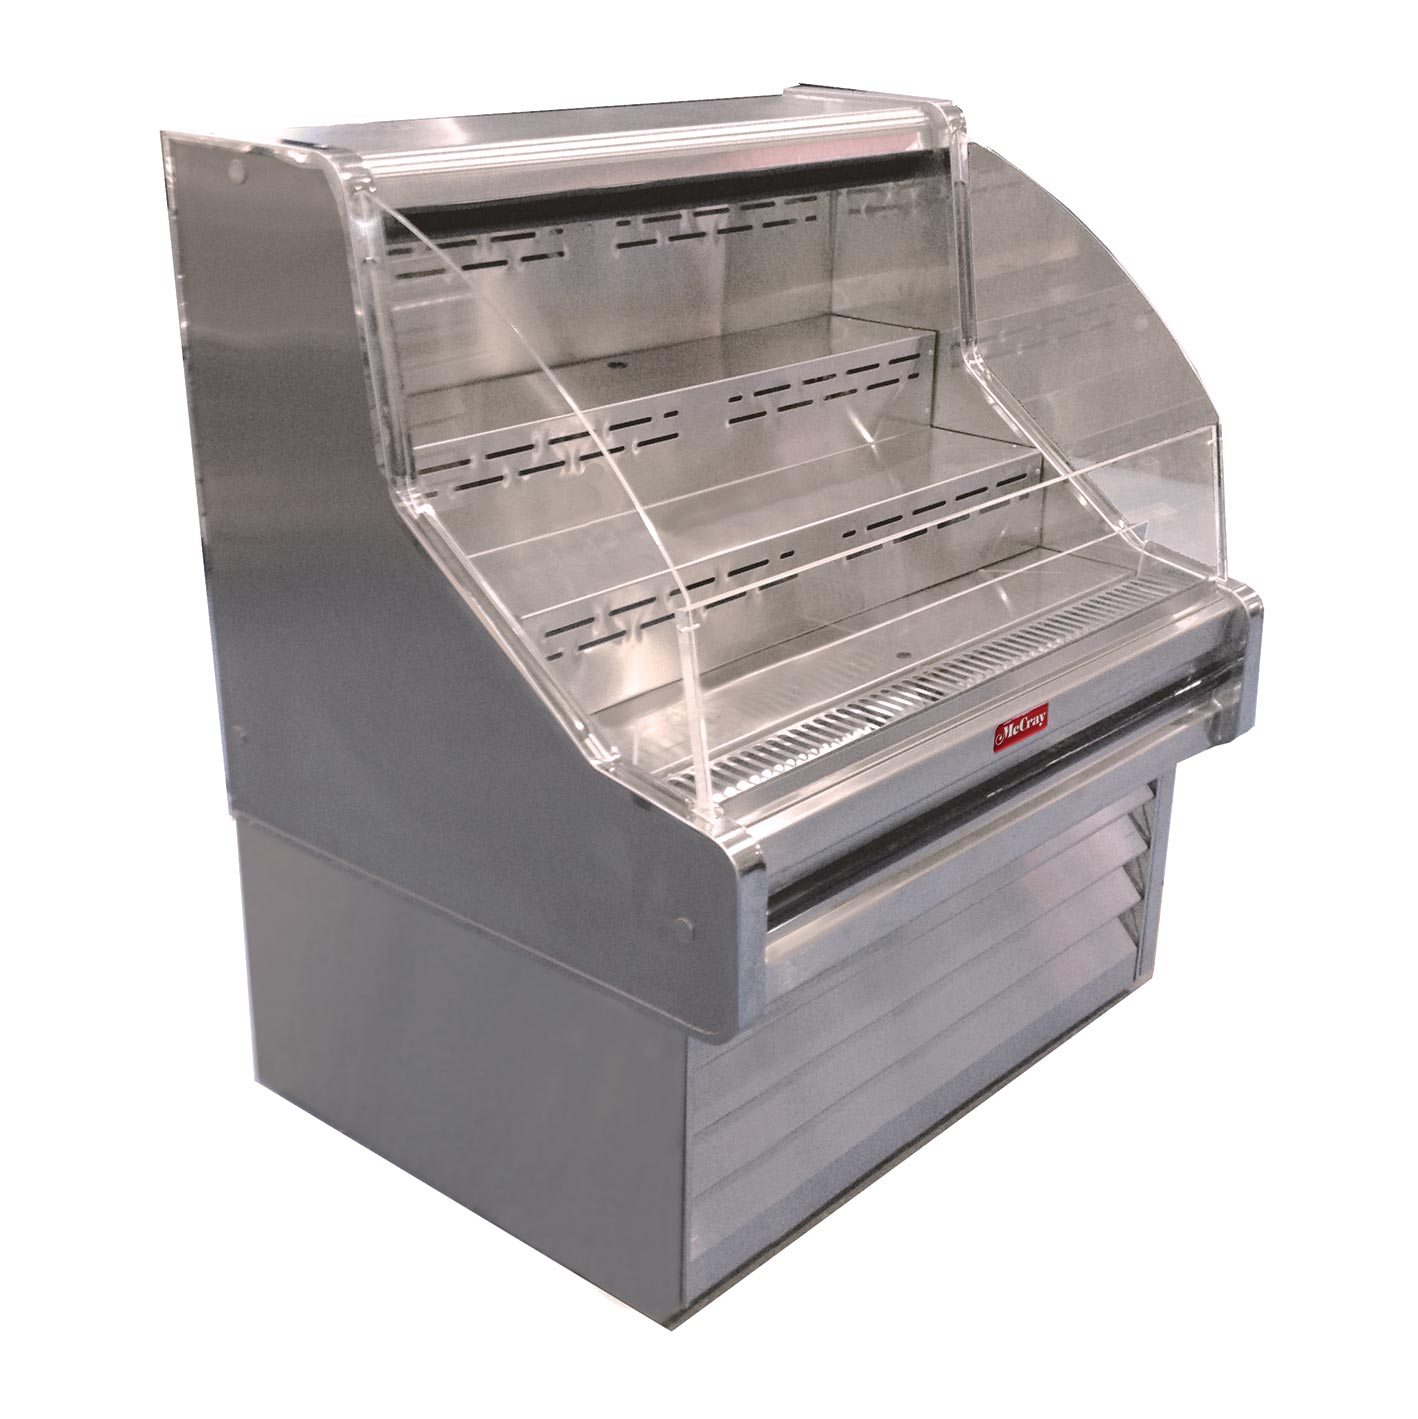 Howard-McCray R-OS35E-5C-S merchandiser, open refrigerated display